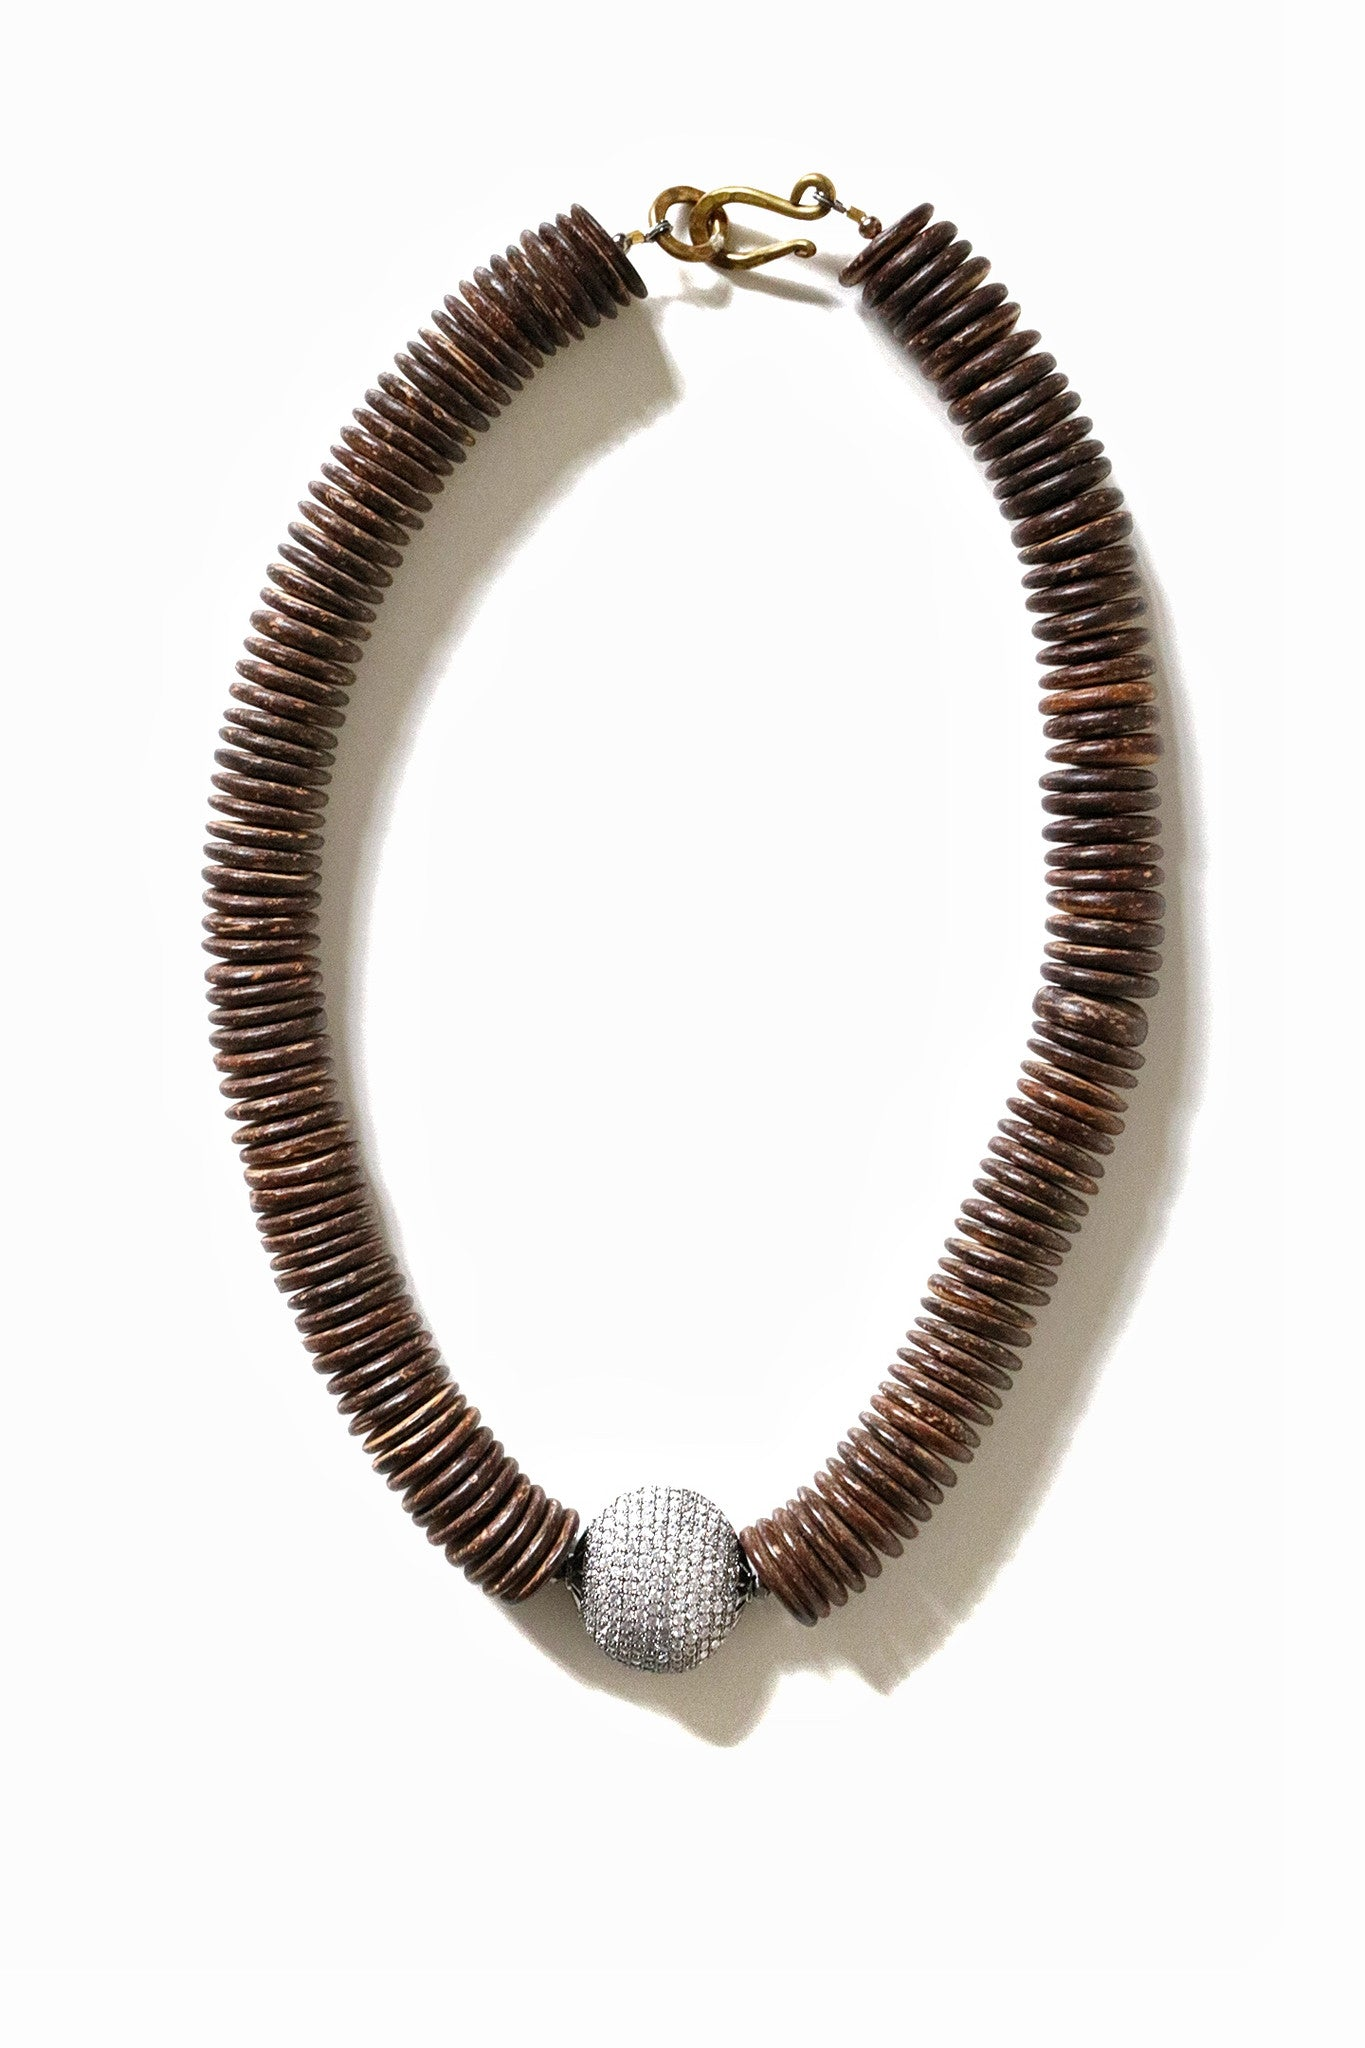 Molly Jane Designs Dark Coconut + Pave Diamond Beaded Necklace